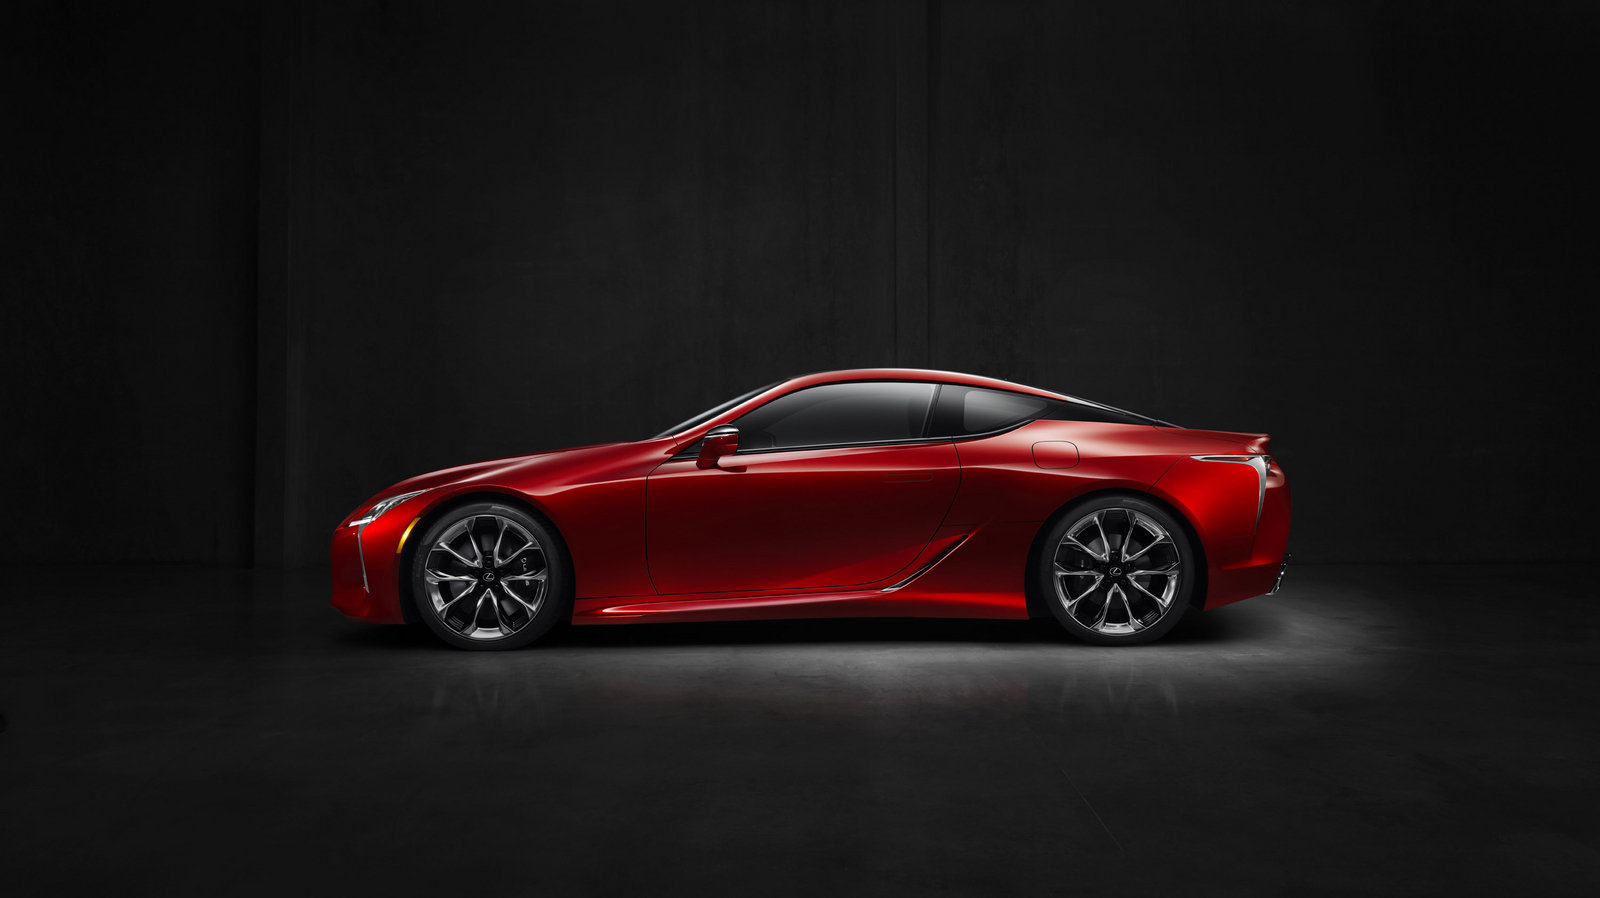 2017 lexus lc 500 picture 661476 car review top speed. Black Bedroom Furniture Sets. Home Design Ideas